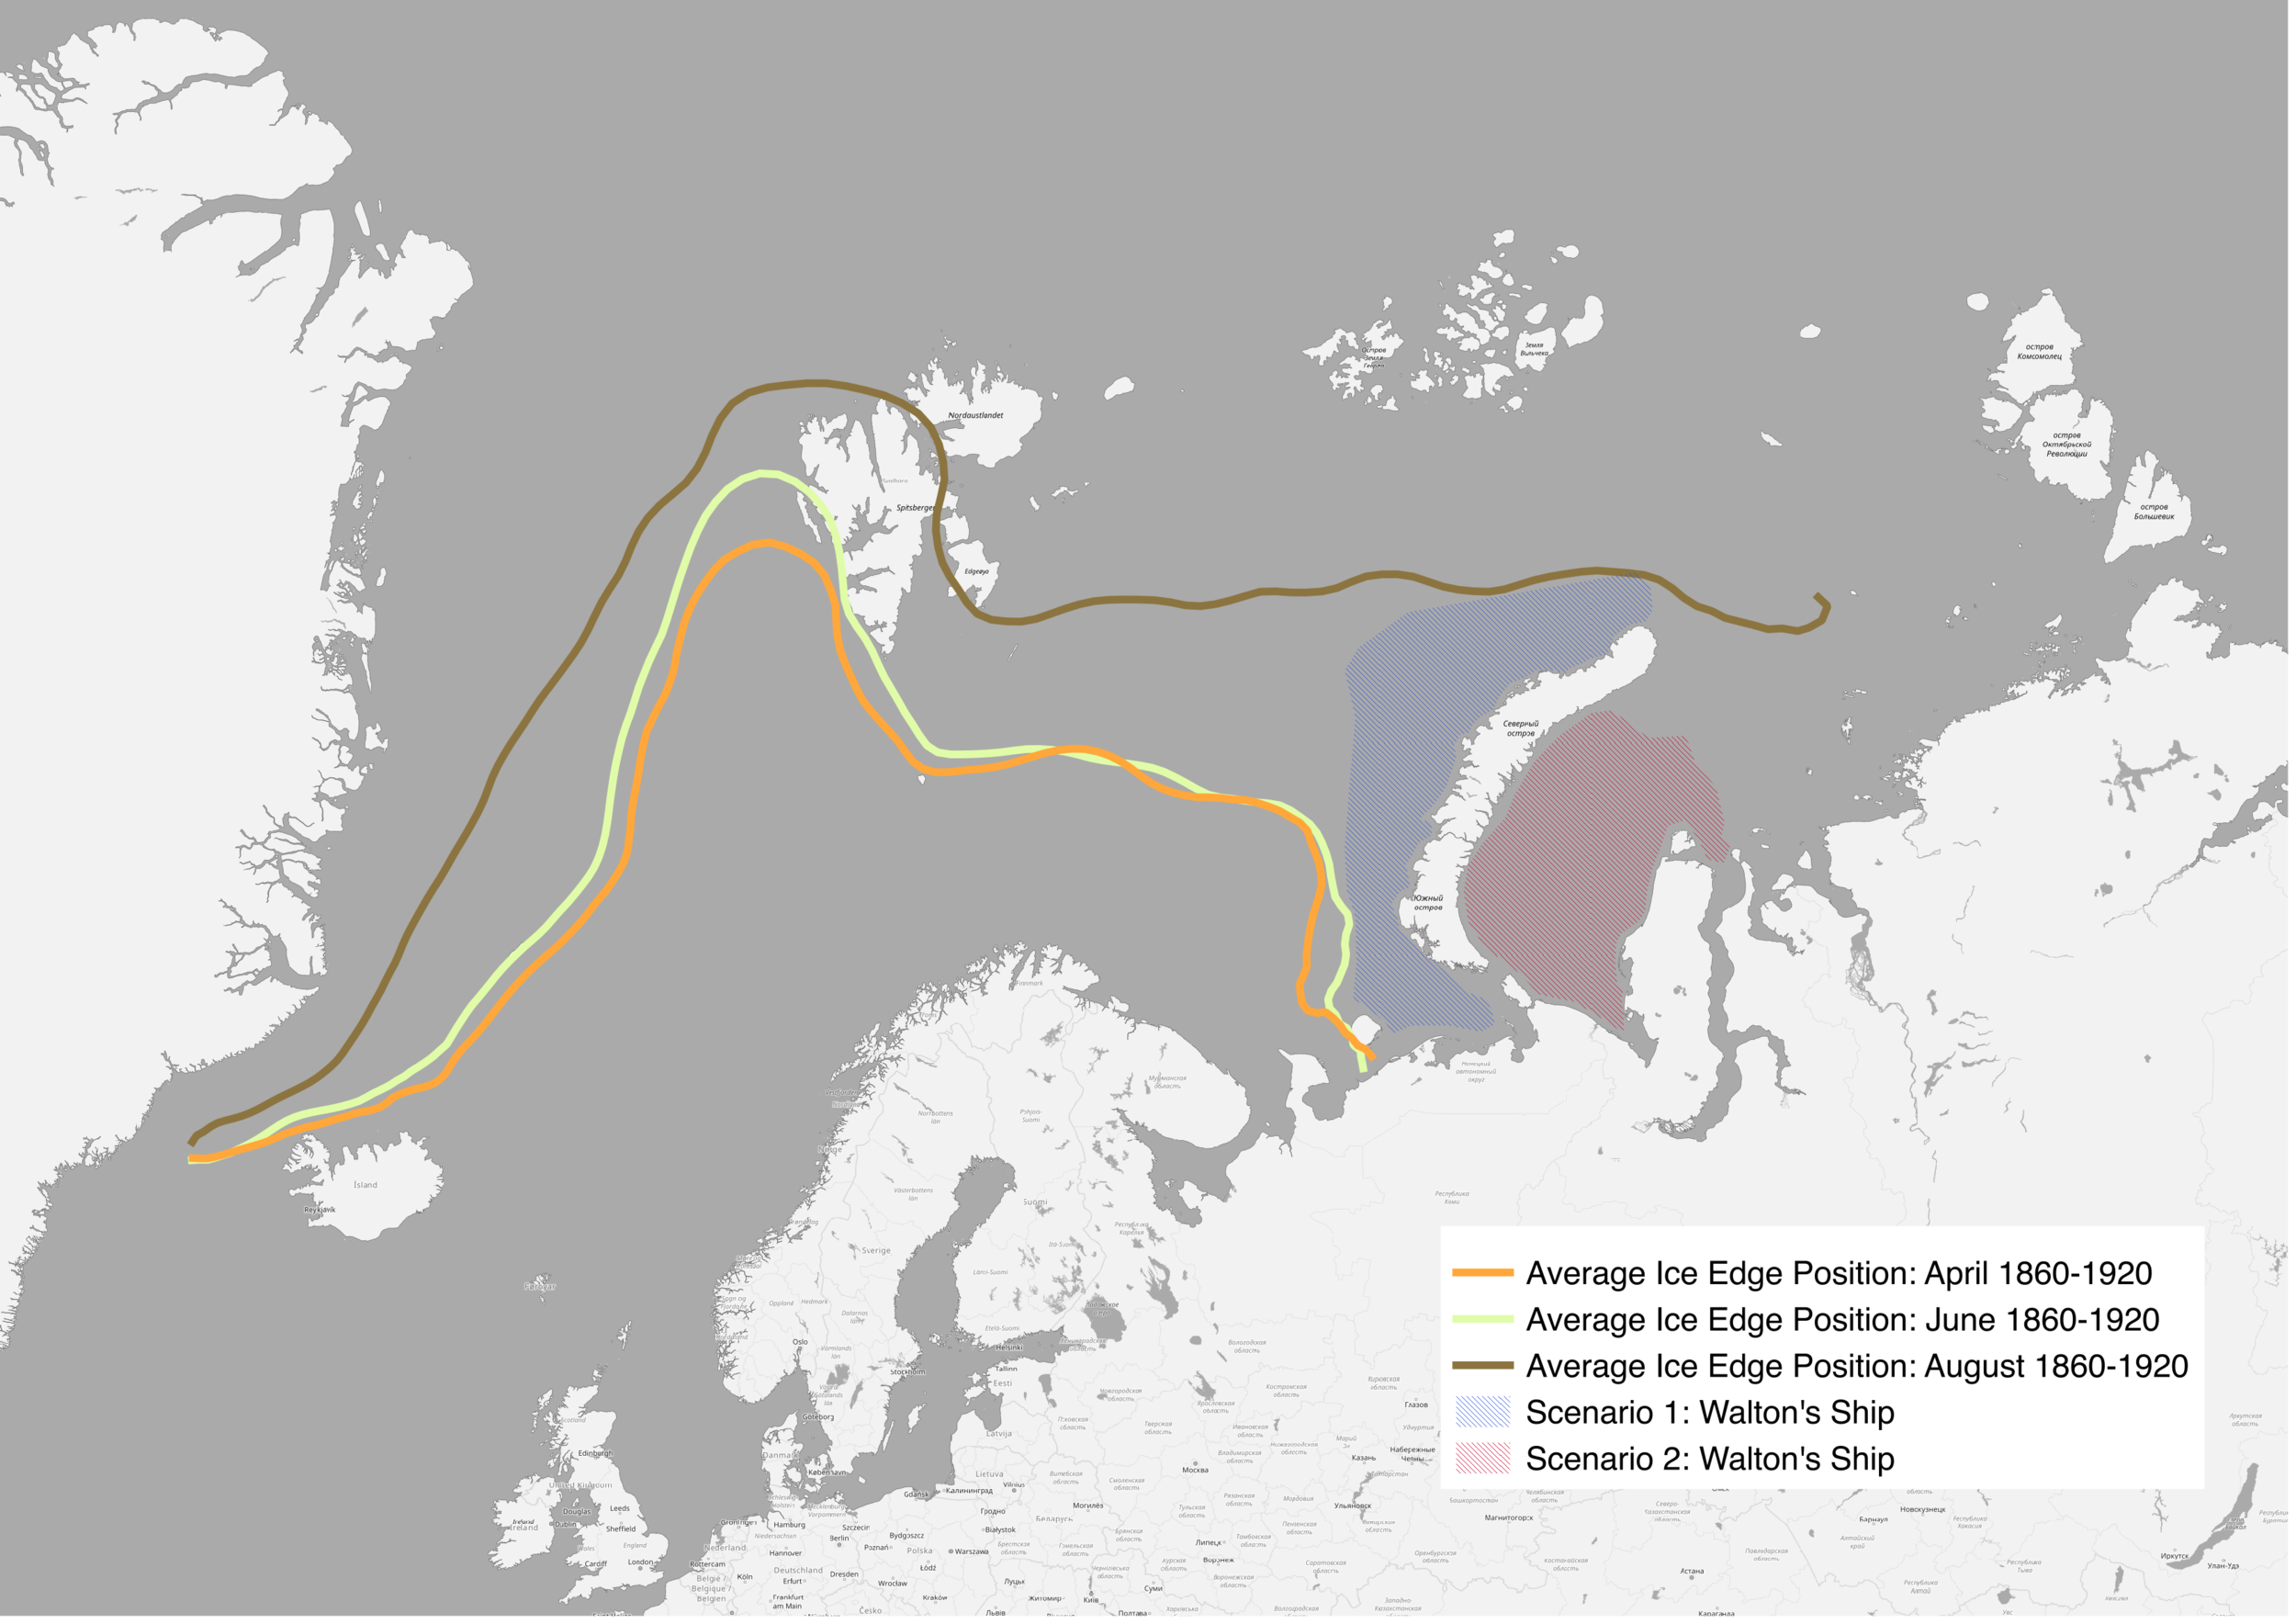 Walton's travels in  Frankenstein  around the northern tip of the Novaya Zemlya archipelago .  Data from Divine, D. V. and C. Dick. 2007. March through August Ice Edge Positions in the Nordic Seas, 1750-2002, Version 1. ACSYS Historical Ice Chart Archive. Boulder, Colorado USA. NSIDC: National Snow and Ice Data Center. doi: https://doi.org/10.7265/N59884X1. 21 April 2018.